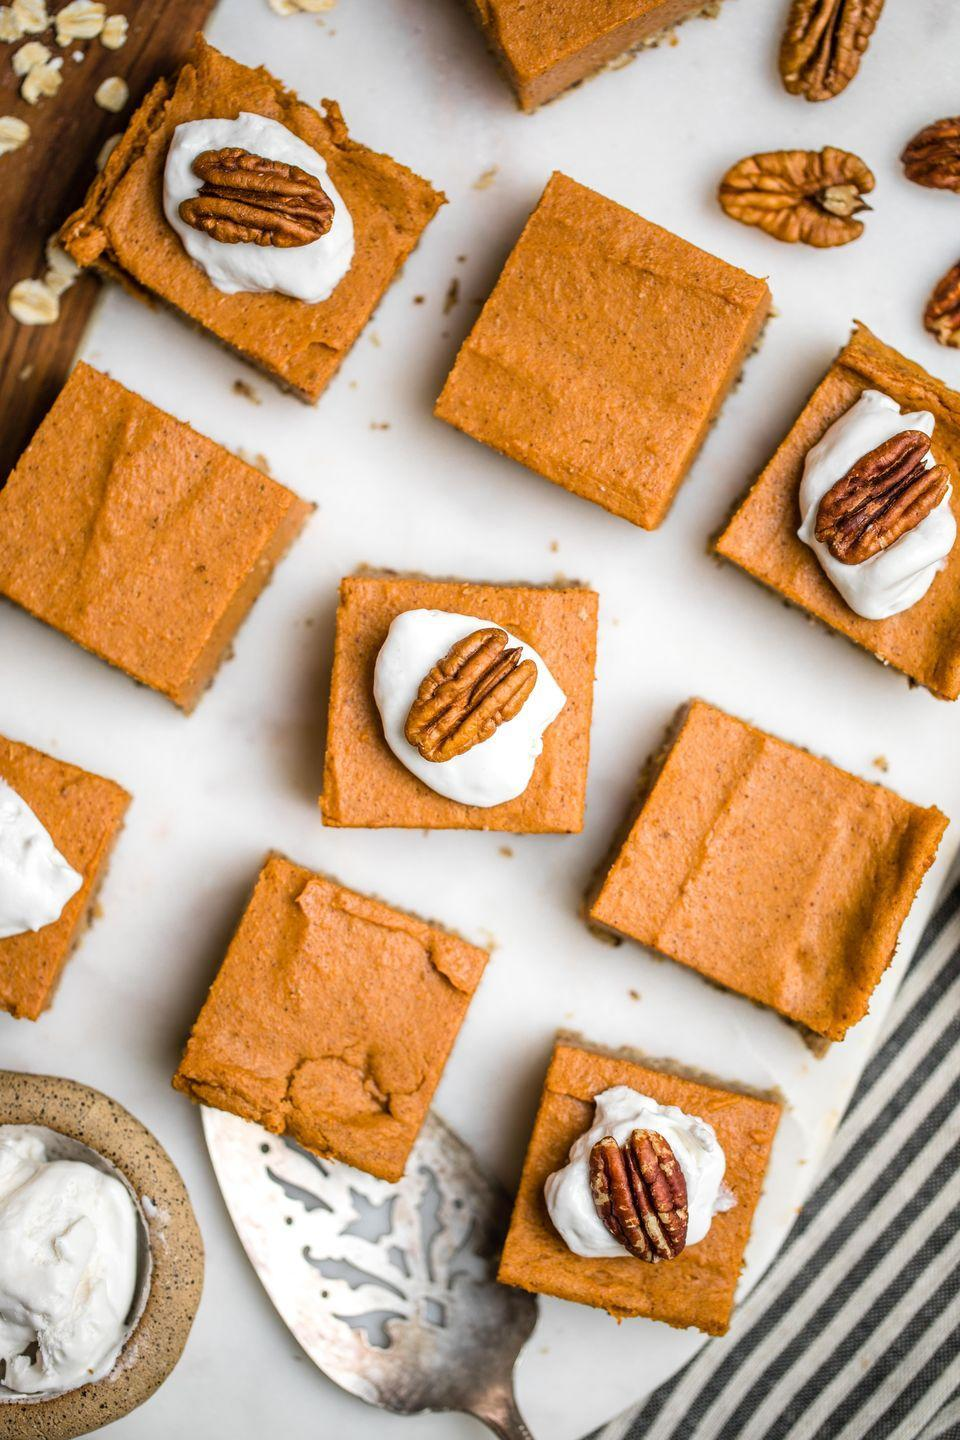 "<p>Because you can never have too many sweet potatoes on Thanksgiving! Sweeten up your favorite holiday side dish with maple syrup to make it dessert-worthy. </p><p><em><a href=""https://frommybowl.com/sweet-potato-pie-bars/"" rel=""nofollow noopener"" target=""_blank"" data-ylk=""slk:Get the the recipe at From My Bowl »"" class=""link rapid-noclick-resp"">Get the the recipe at From My Bowl »</a></em></p><p><strong>RELATED: </strong><a href=""https://www.goodhousekeeping.com/food-recipes/g657/sweet-potato-recipes/"" rel=""nofollow noopener"" target=""_blank"" data-ylk=""slk:30+ Best Sweet Potato Recipes to Try This Fall"" class=""link rapid-noclick-resp"">30+ Best Sweet Potato Recipes to Try This Fall </a></p>"